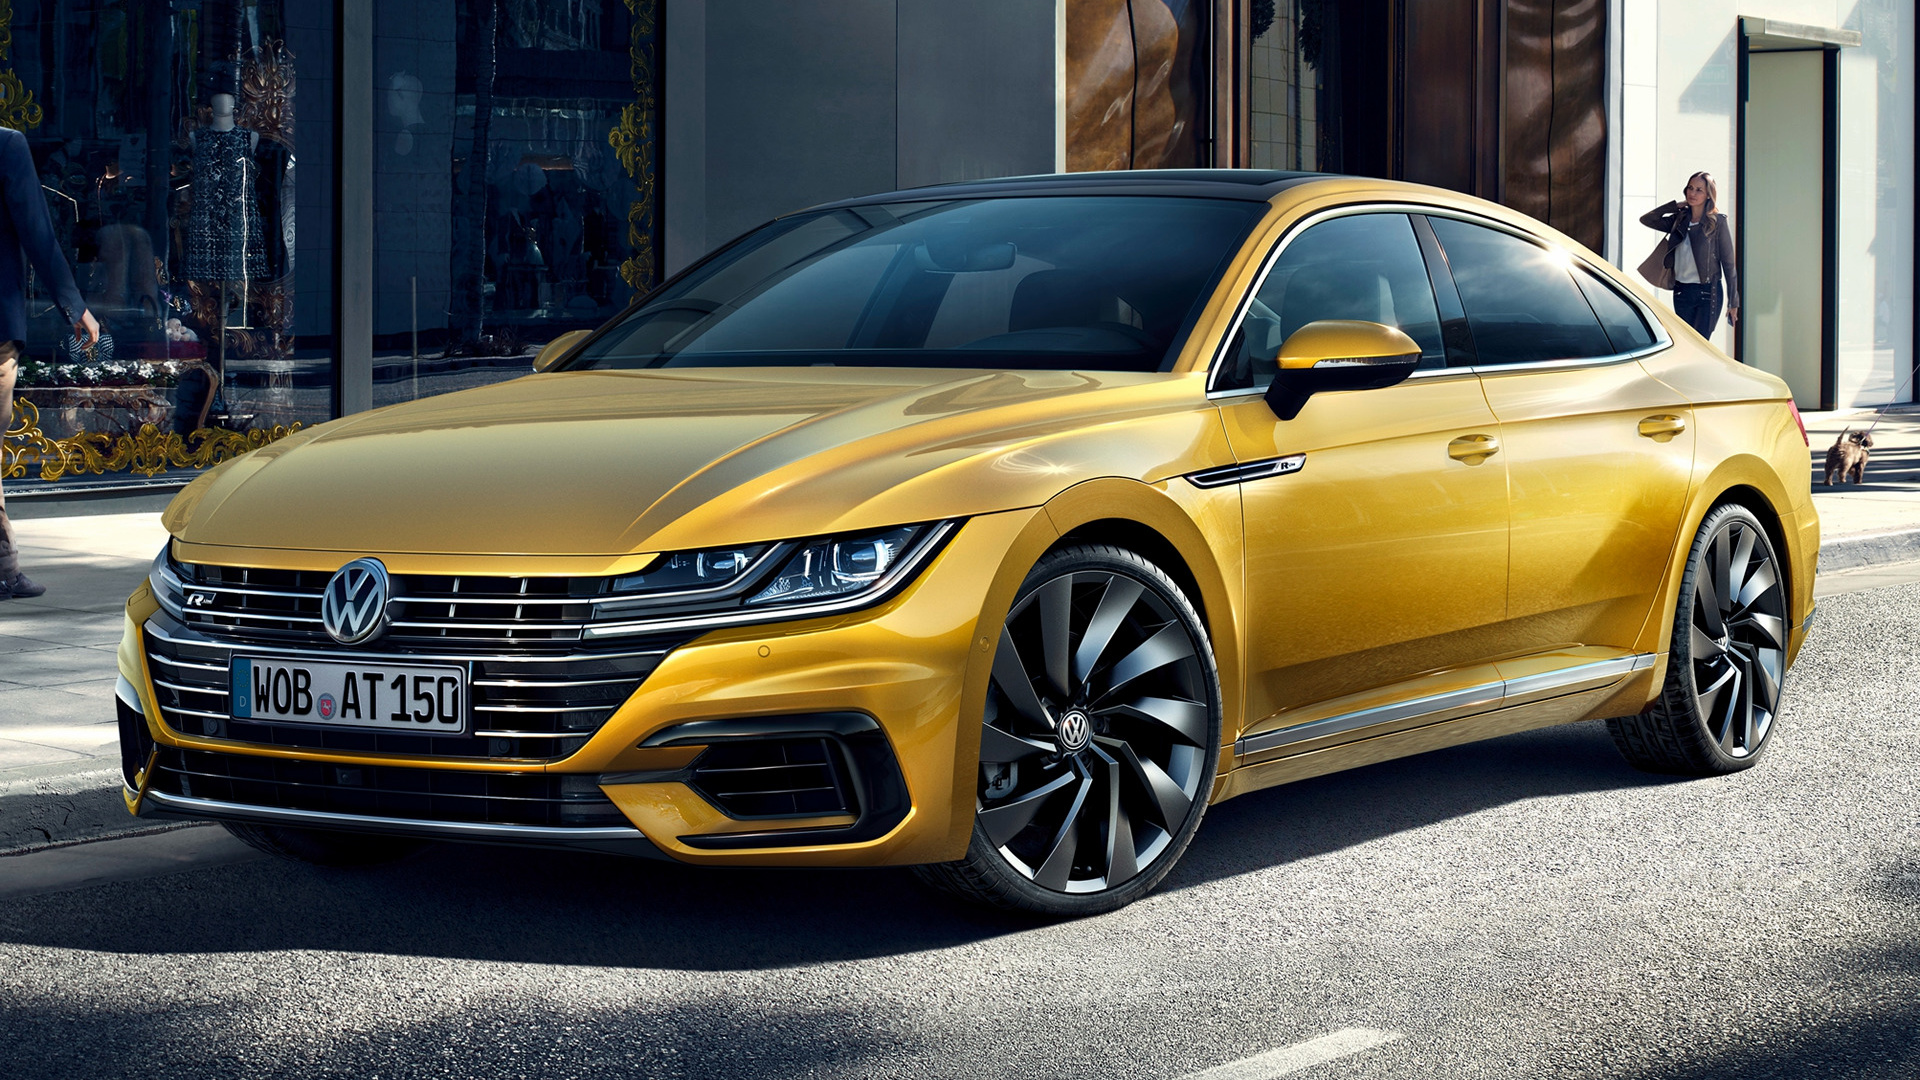 1920x1080 - Volkswagen Arteon Wallpapers 15